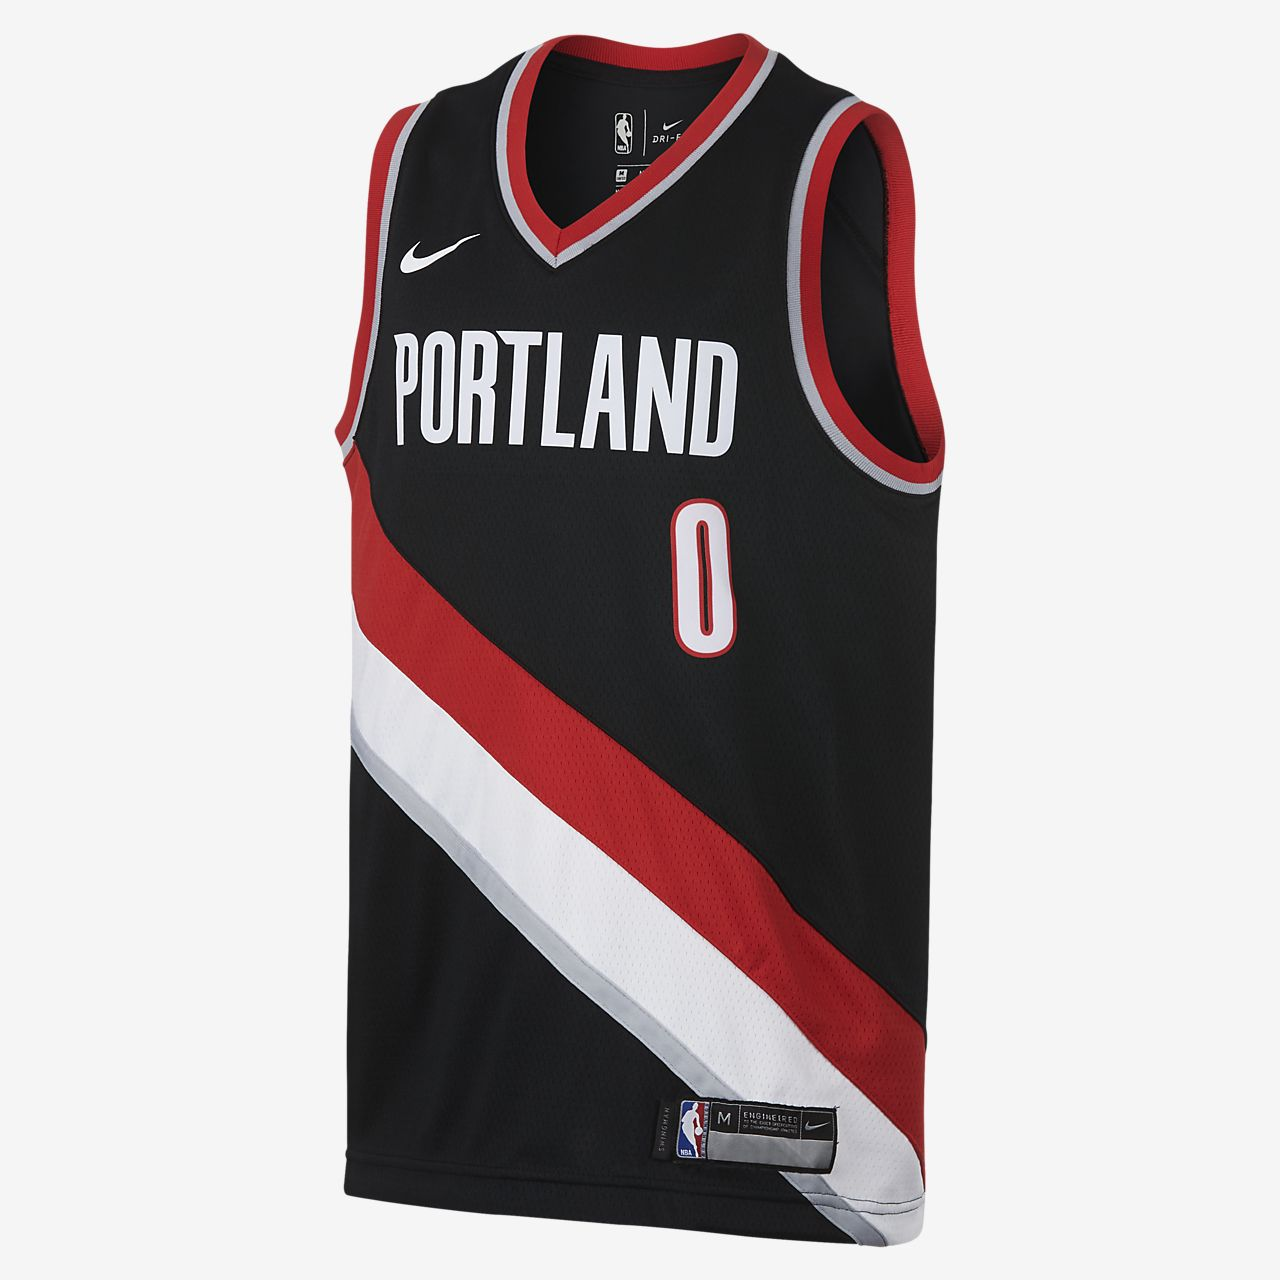 low priced c0b6b 0815a Damian Lillard Portland Trail Blazers Nike Icon Edition Swingman Big Kids'  NBA Jersey